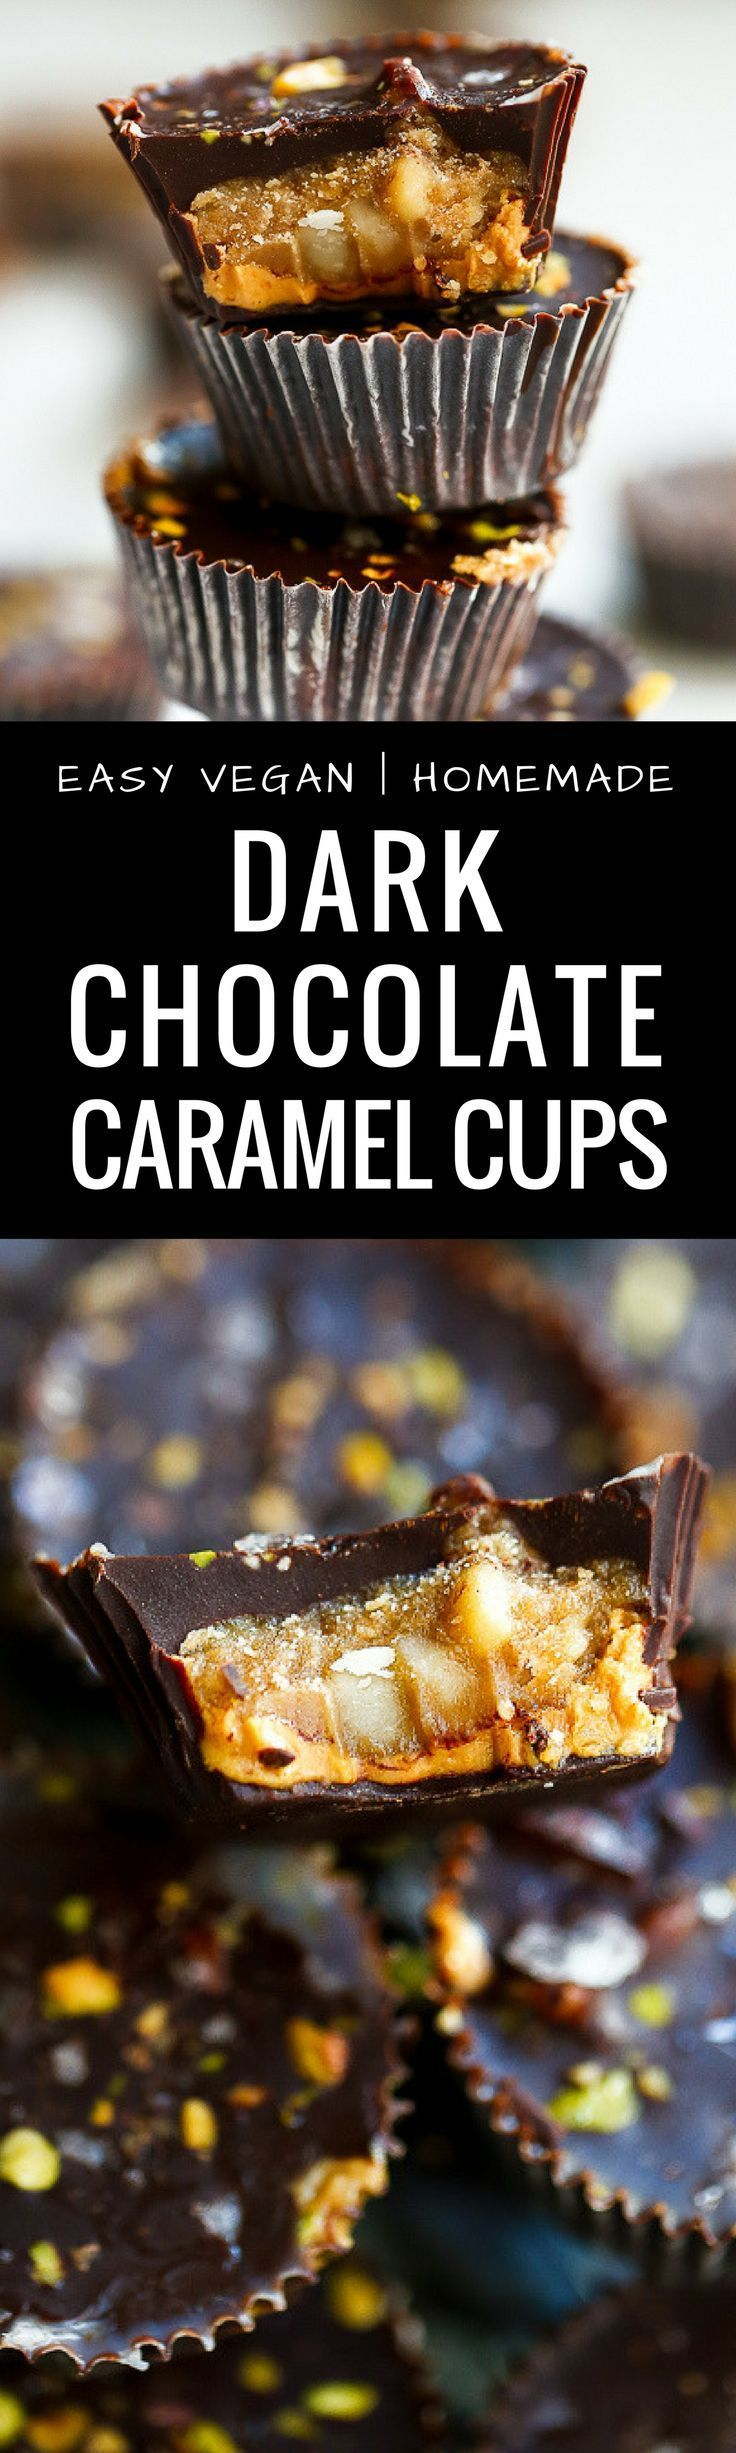 Easy Vegan Dark Chocolate Caramel Cups. These vegan, paleo treats are made with creamy cashew butter, filled with caramel and covered in dark chocolate. Healthy vegan recipes. Healthy vegan desserts. Chocolate vegan dessert recipes. Dairy free caramel cups. Paleo, vegan, easy to make and delicious! Paleo vegan dark chocolate caramel cups recipe! via /themovementmenu/